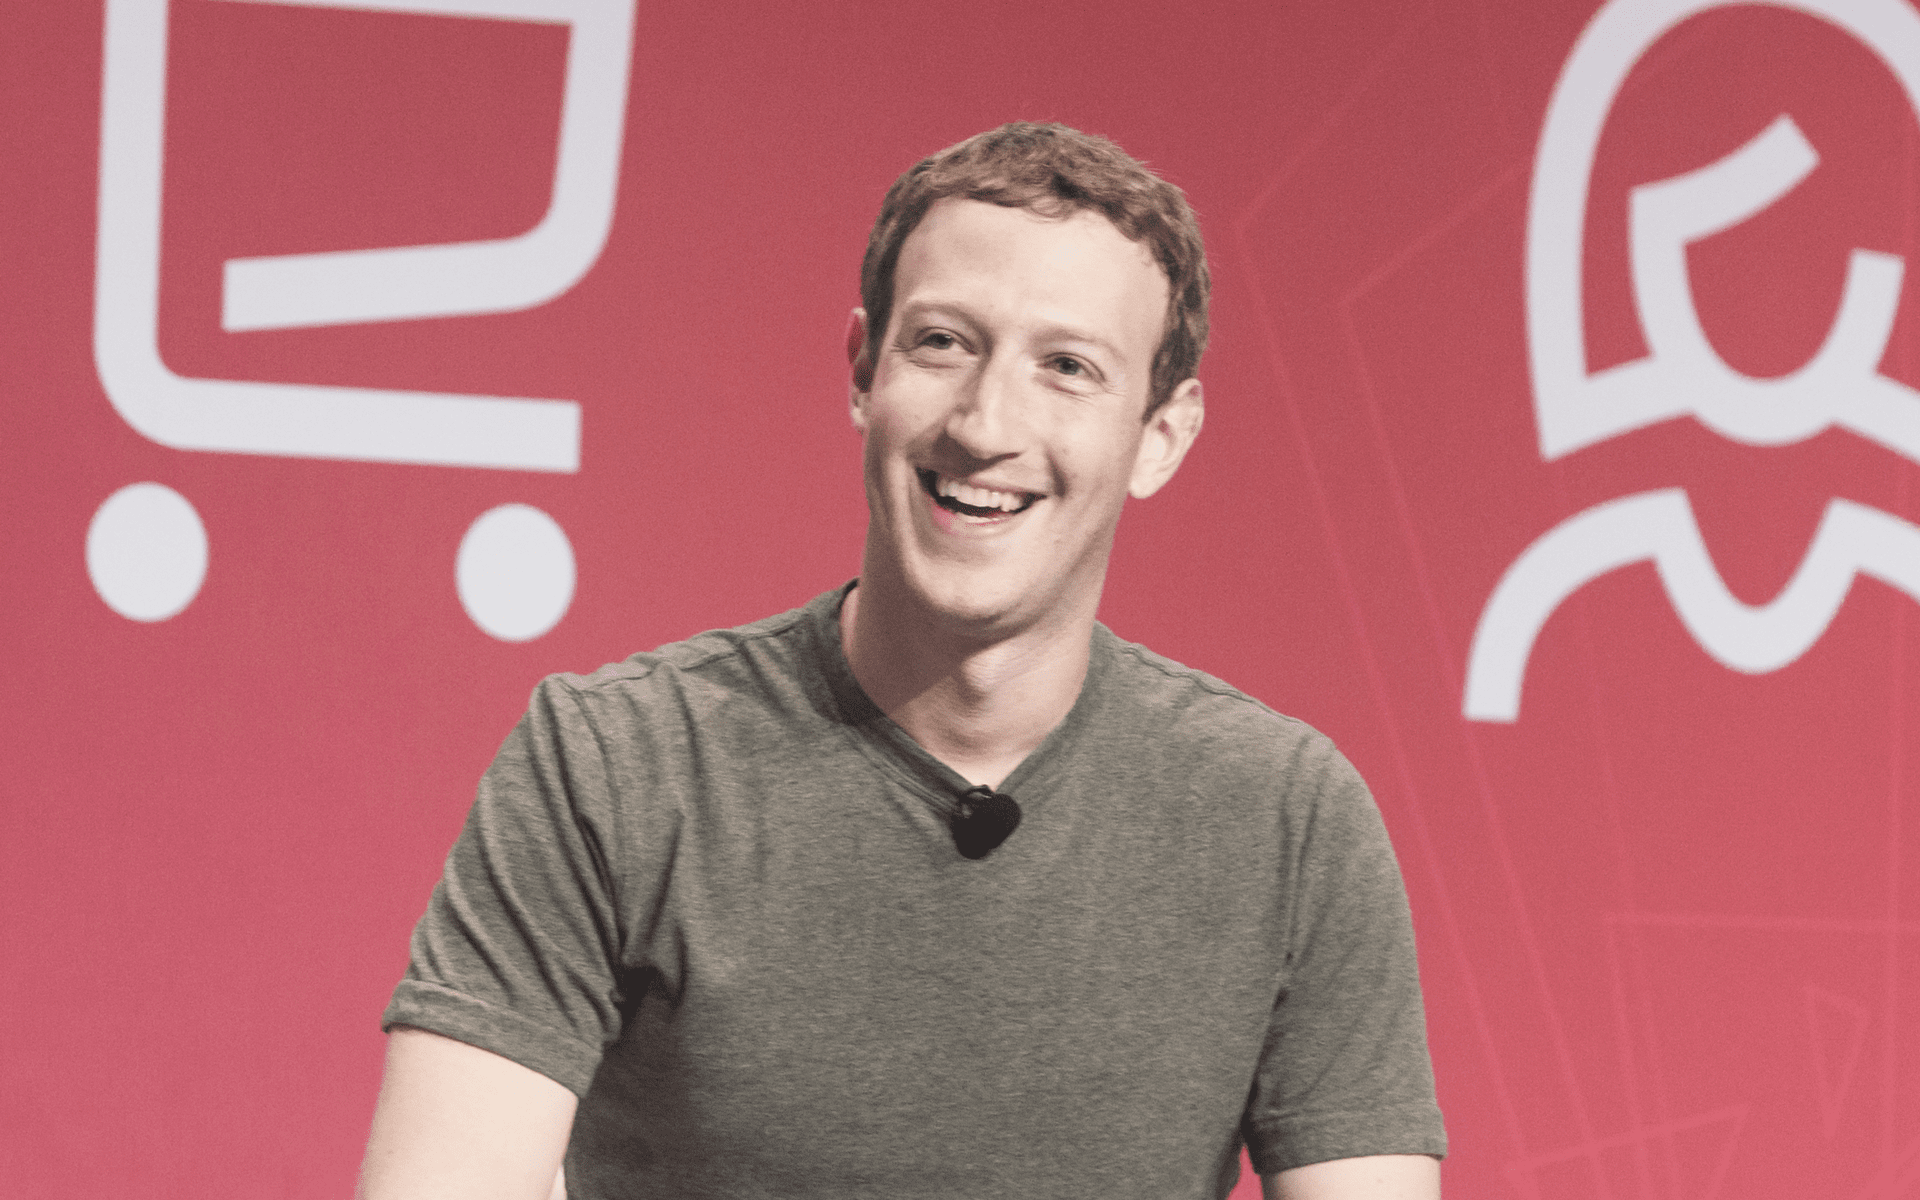 Crypto facebook mark zuckerberg Libra